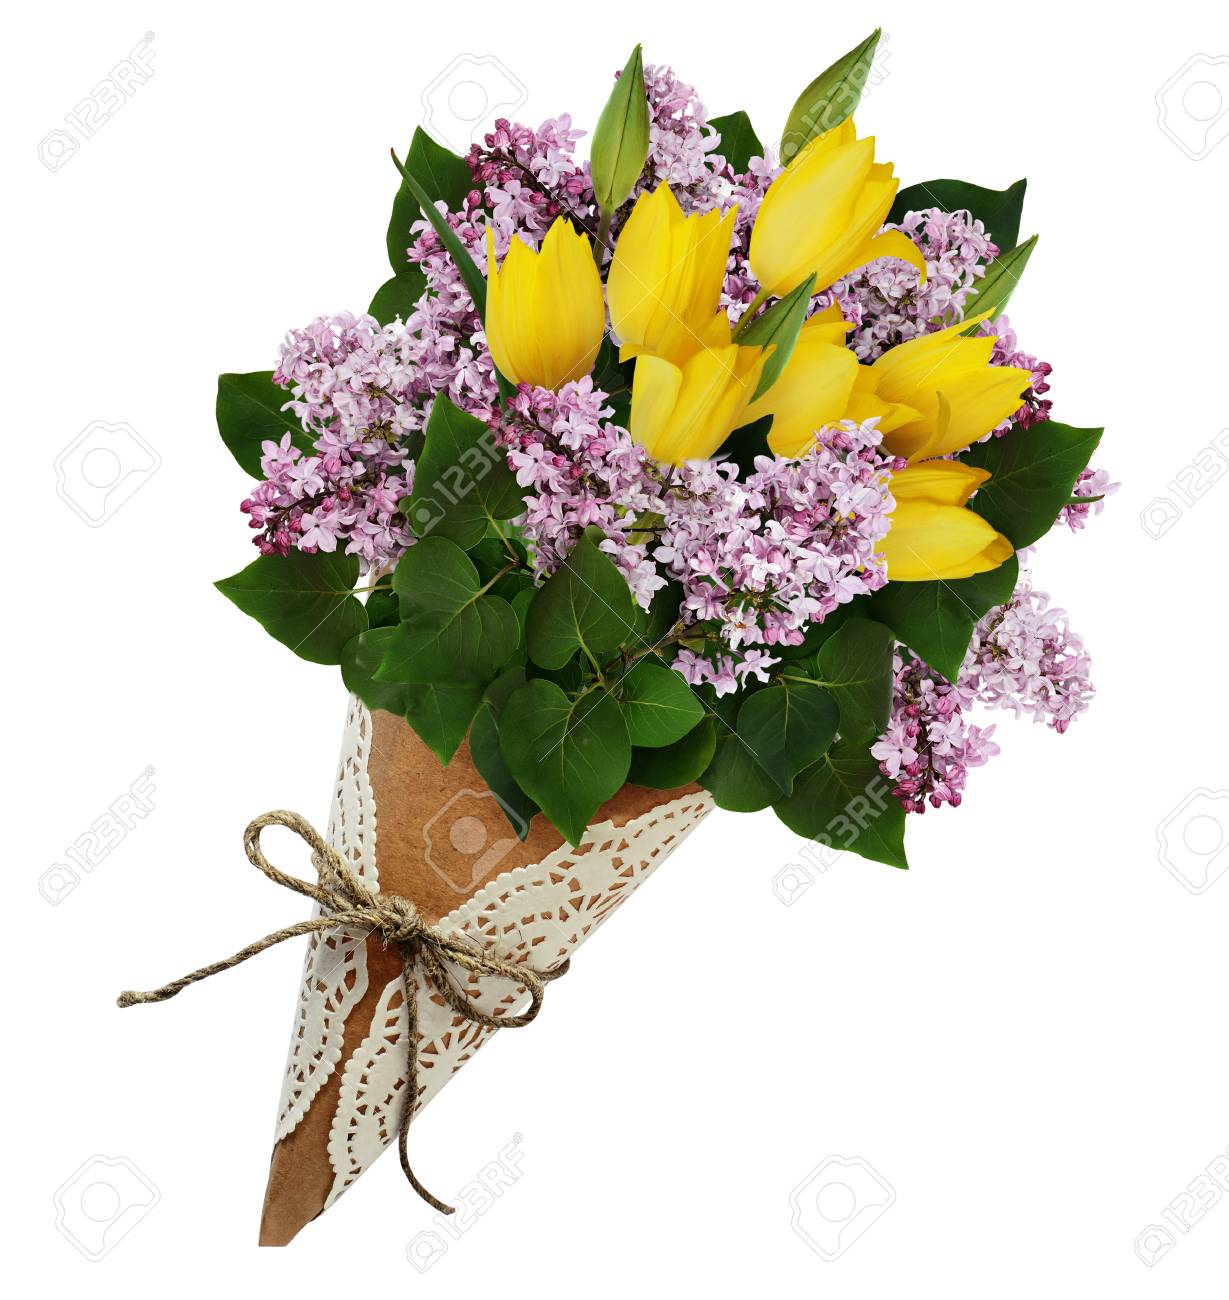 Lilac And Yellow Tulip Flowers Bouquet In A Craft Paper Cornet ...